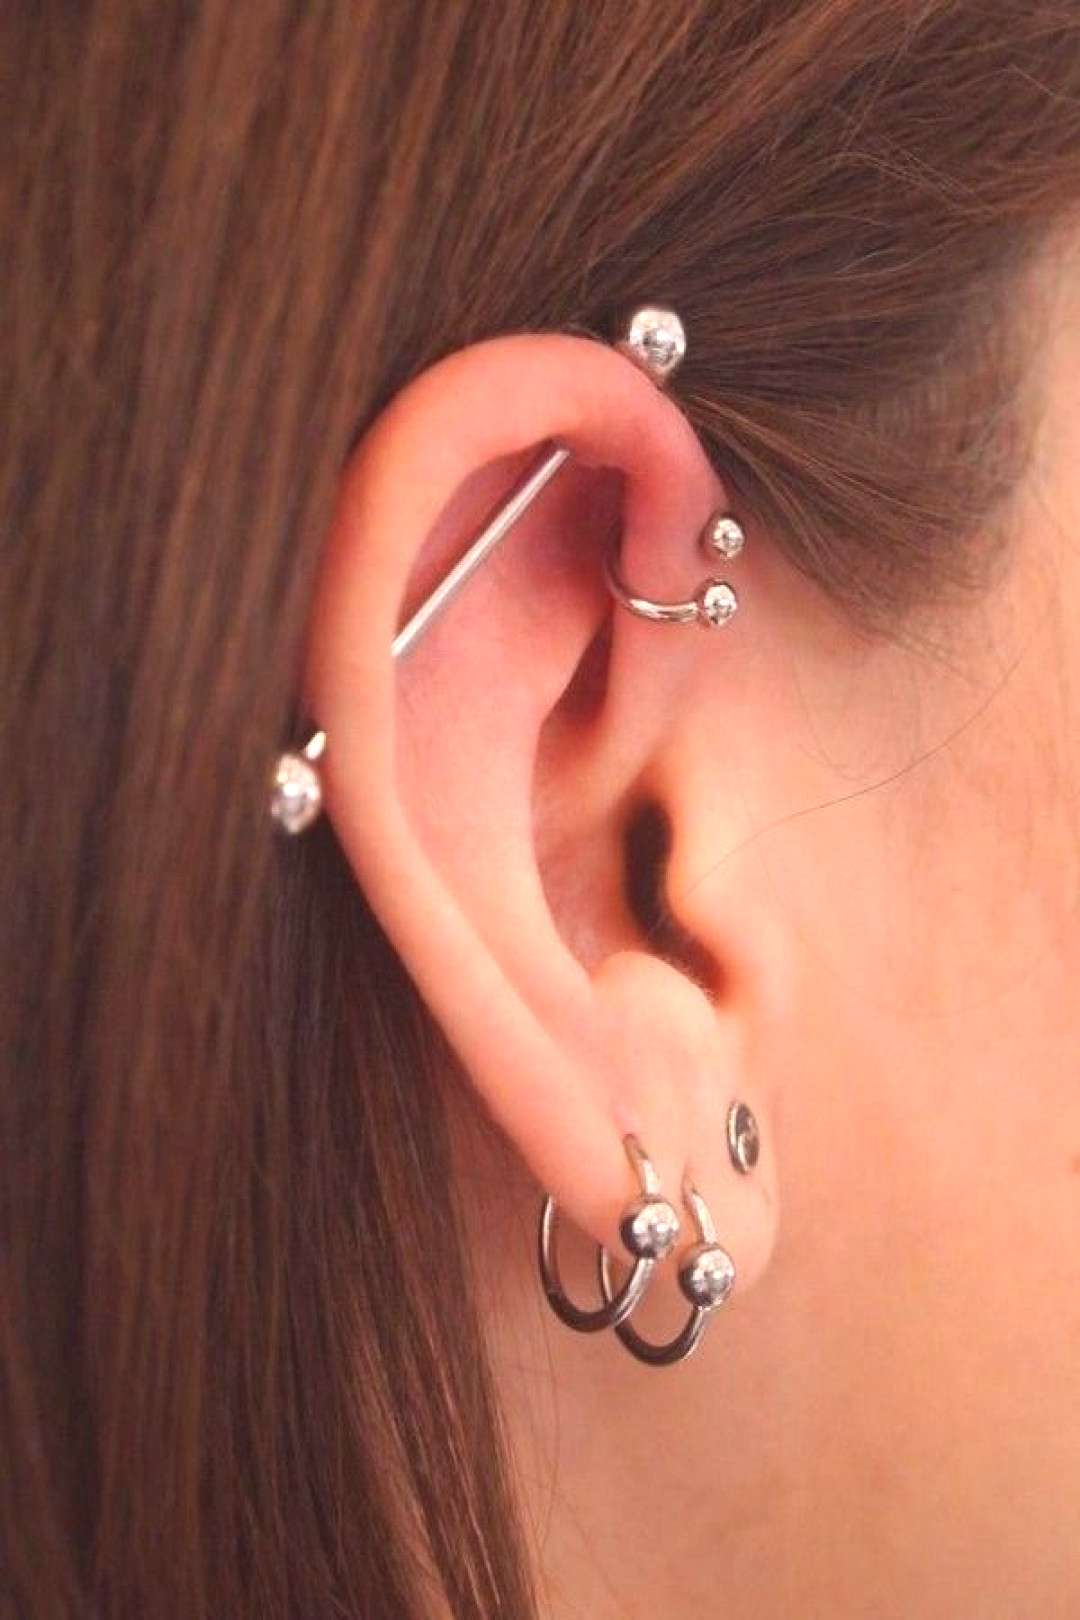 53+ Unique and Cool Ear Piercings Ideas [2019 -